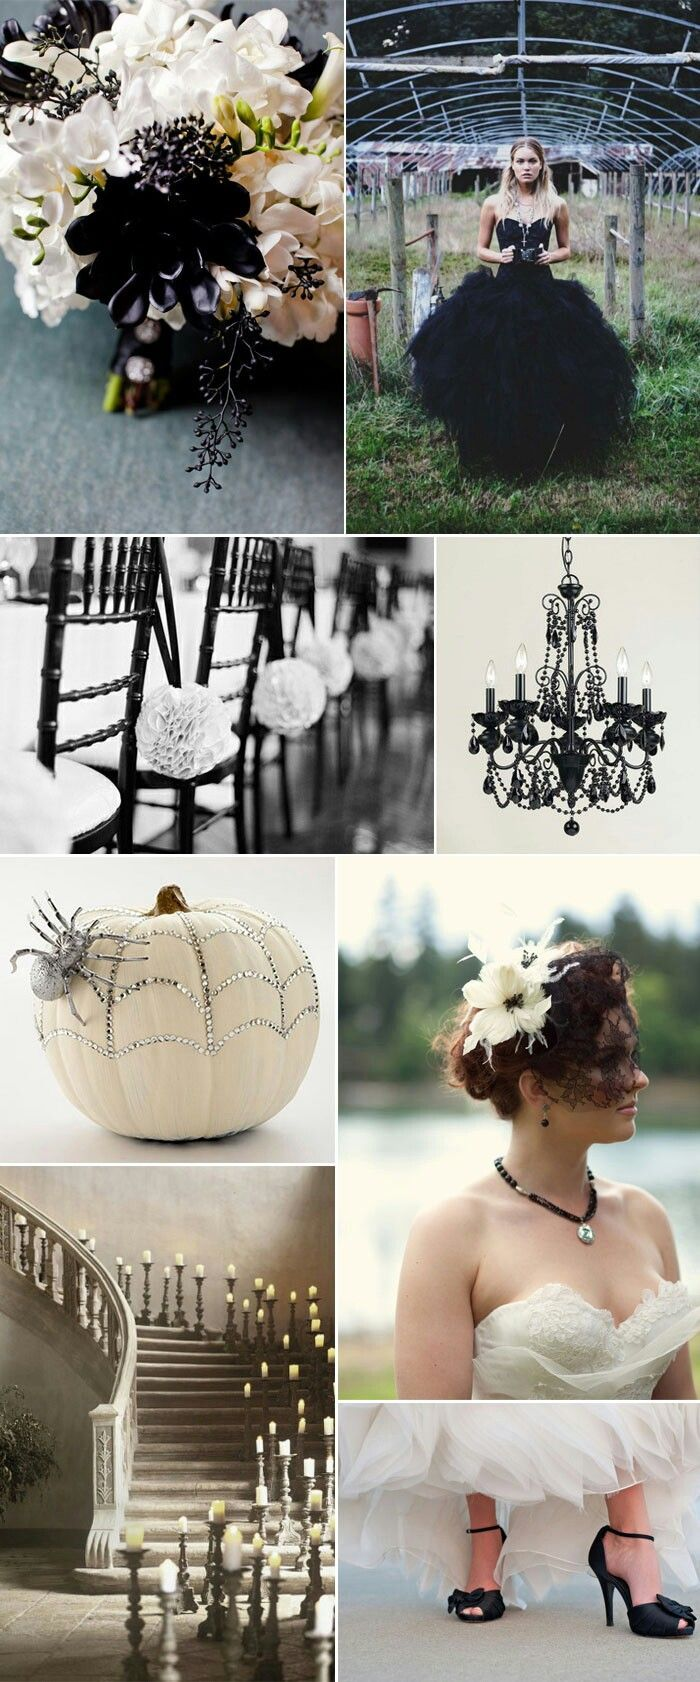 A Halloween wedding sounds pretty cool! All Hallow's Eve - Black and White  Wedding Inspiration, beautiful! have a Halloween wedding at the Texas  Renaissance ...